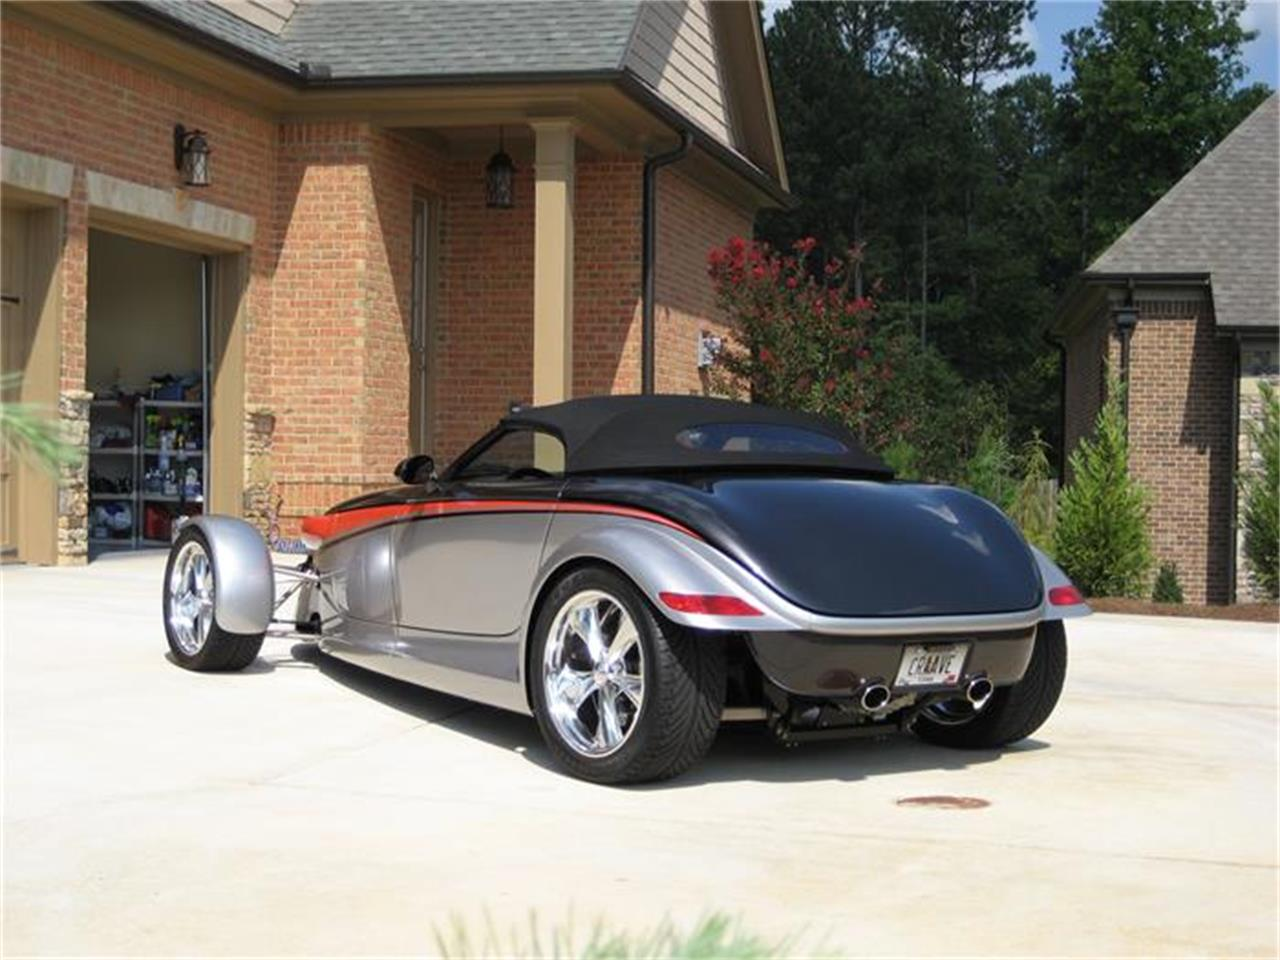 Large Picture of 1999 Chrysler Prowler - $89,900.00 - ARNS